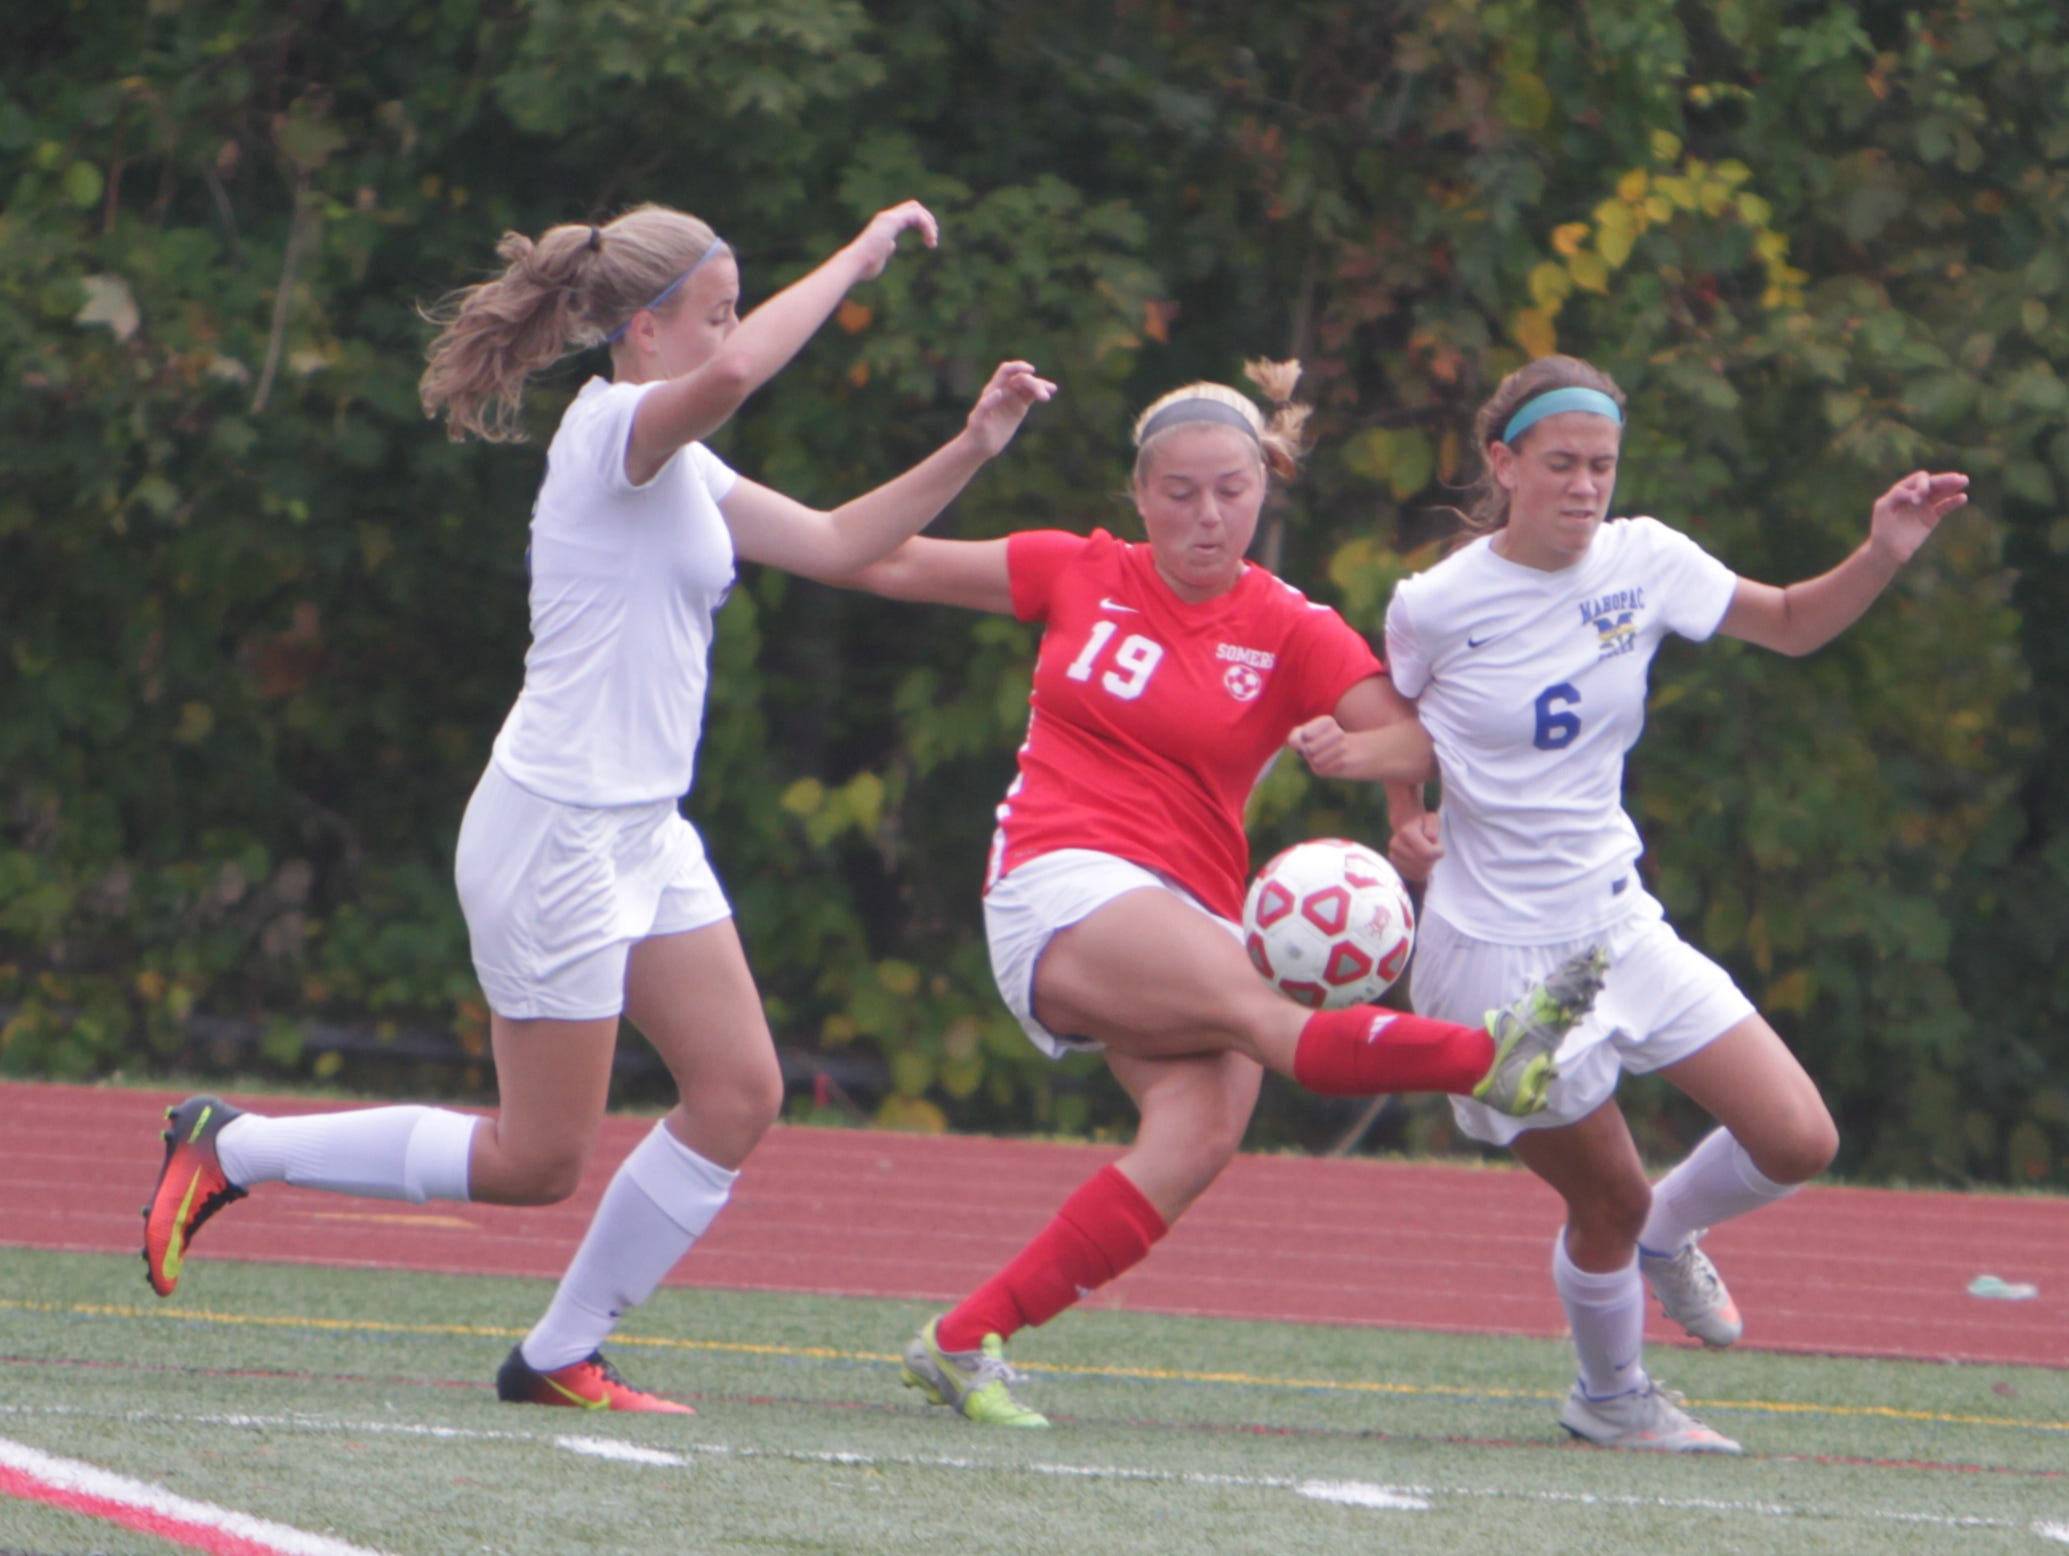 Action during a Section 1 girls soccer game between Mahopac and Somers at Mahopac High School on Saturday, Oct. 8th, 2016. Somers won 2-0.